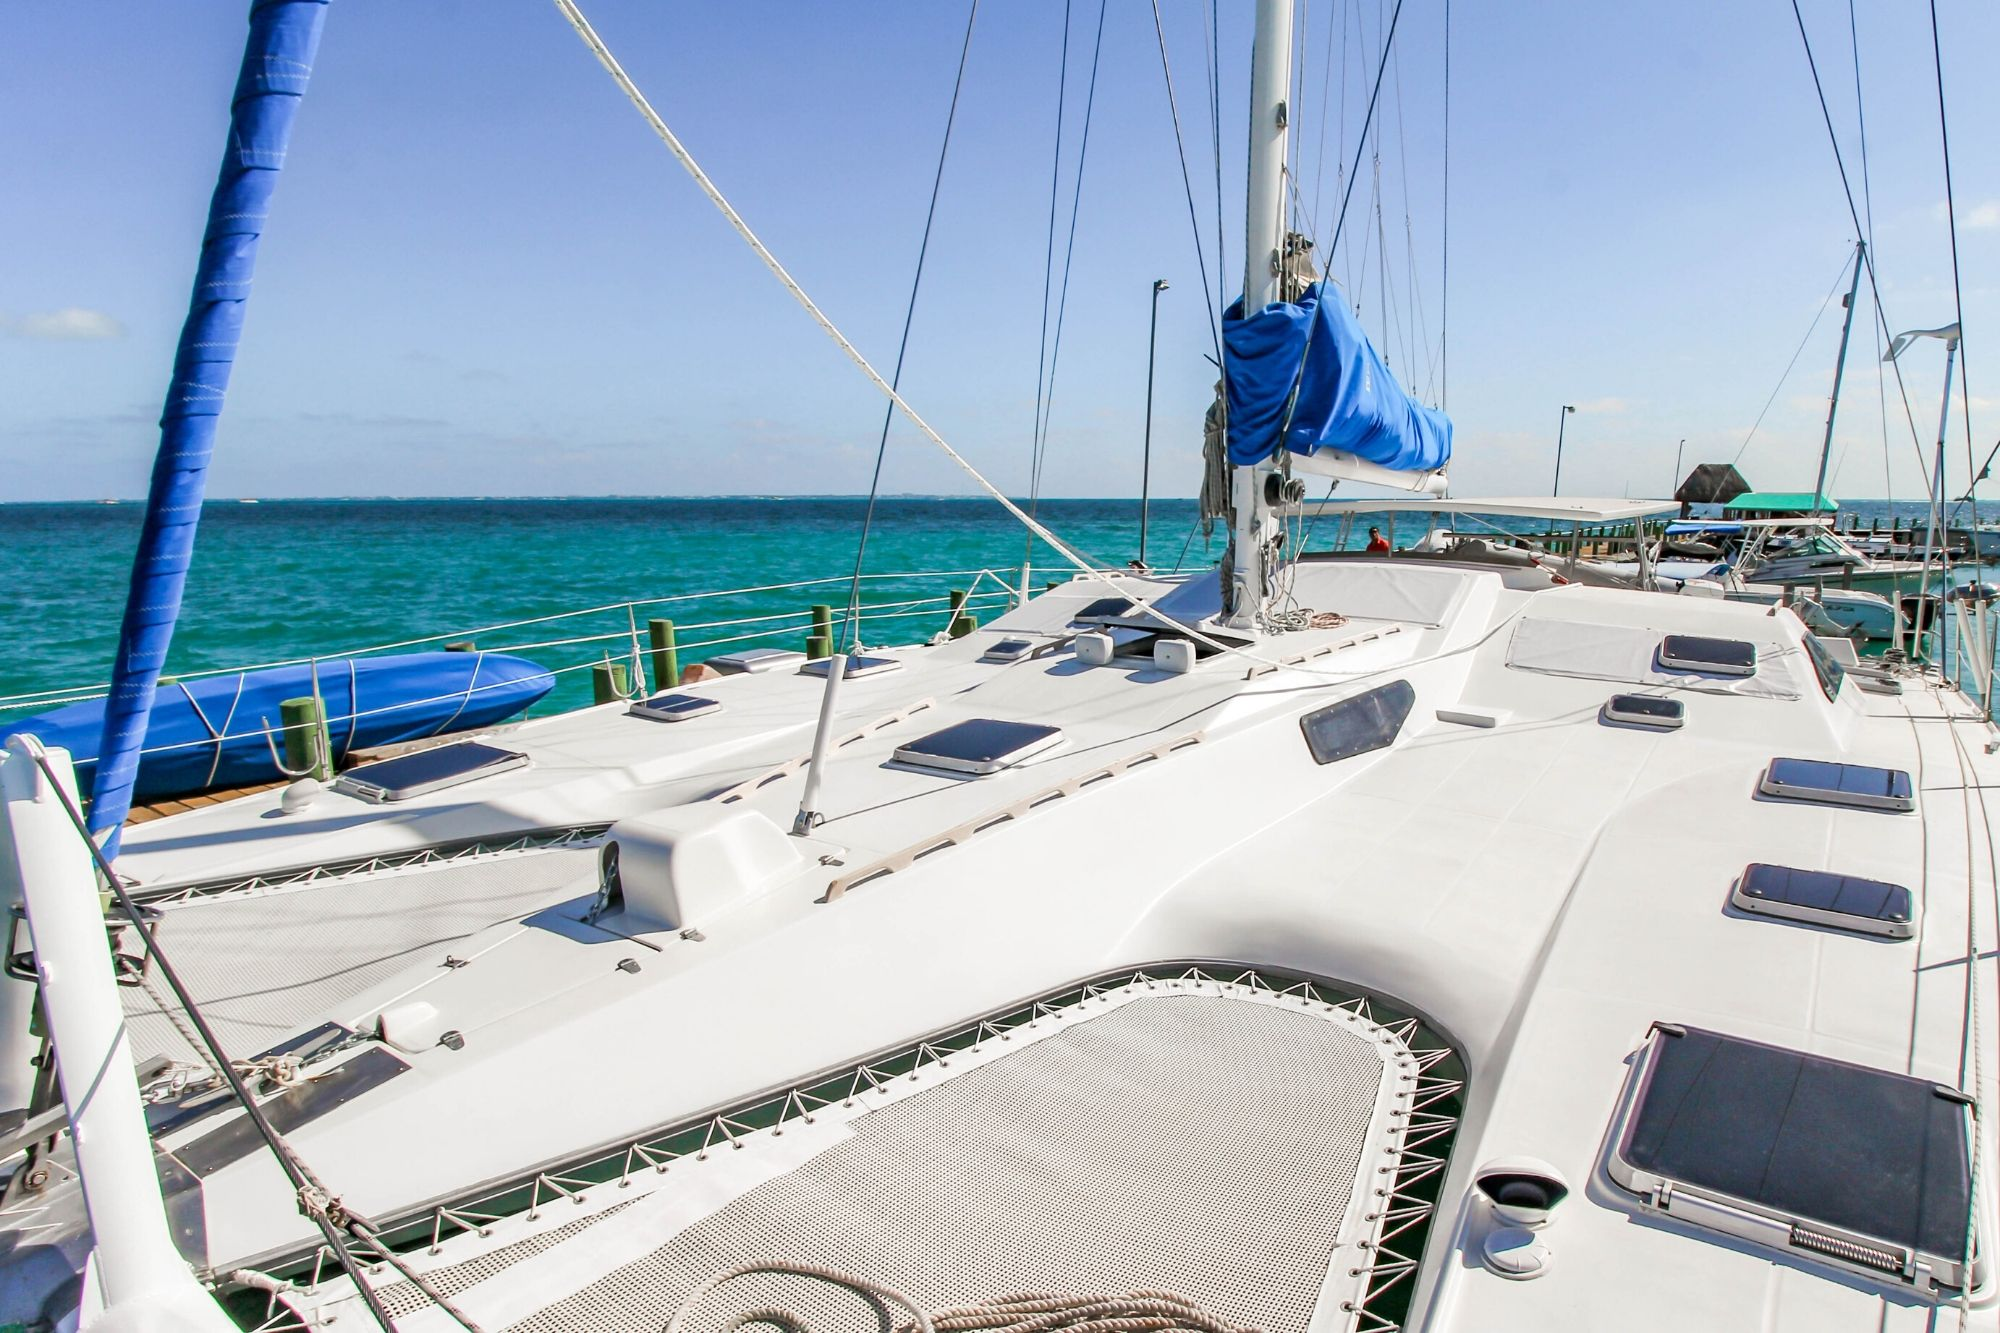 4 Max - Private tour to Isla Mujeres in catamaran - Cancun Sailing